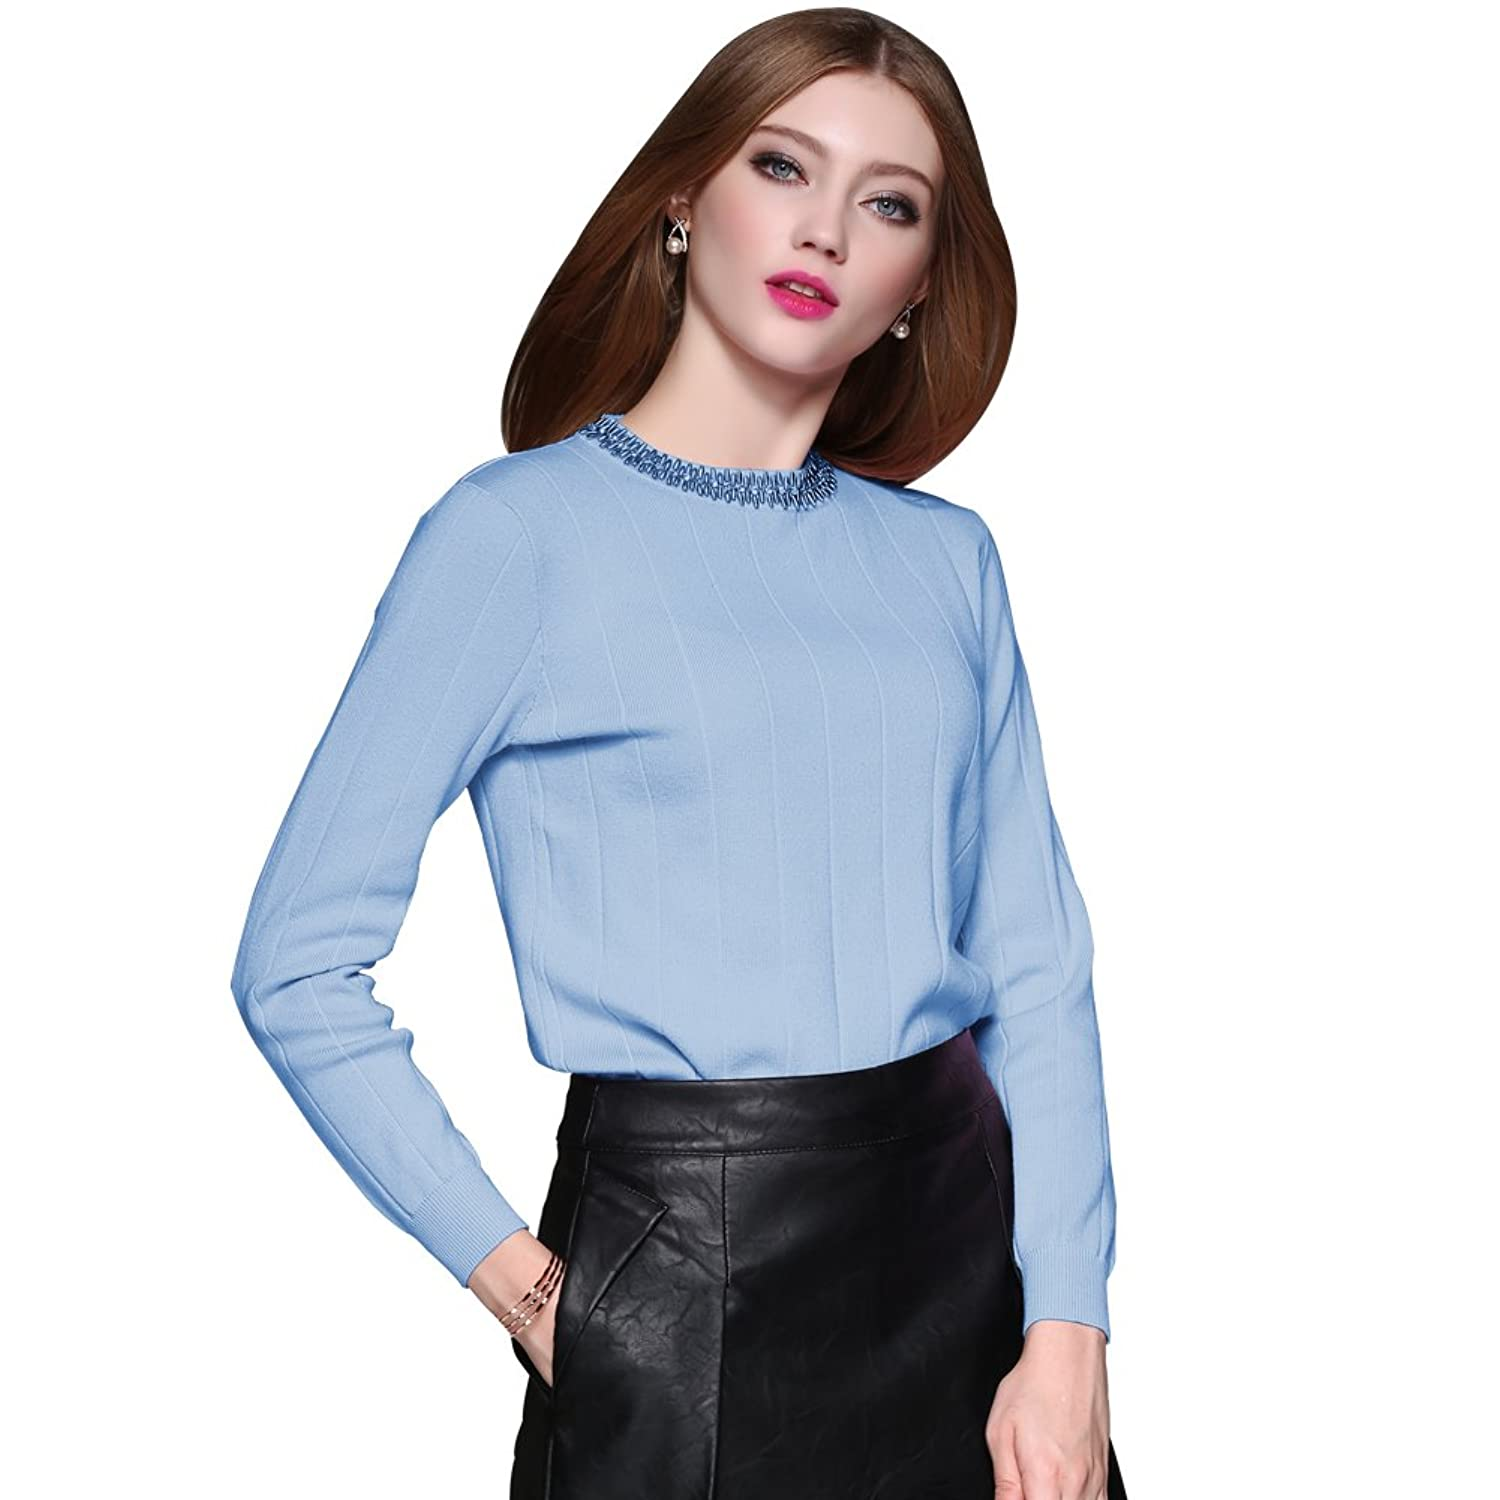 Soly Tech Women's Stylish Beaded Round Neck Pullover Knitted Sweater Shirts